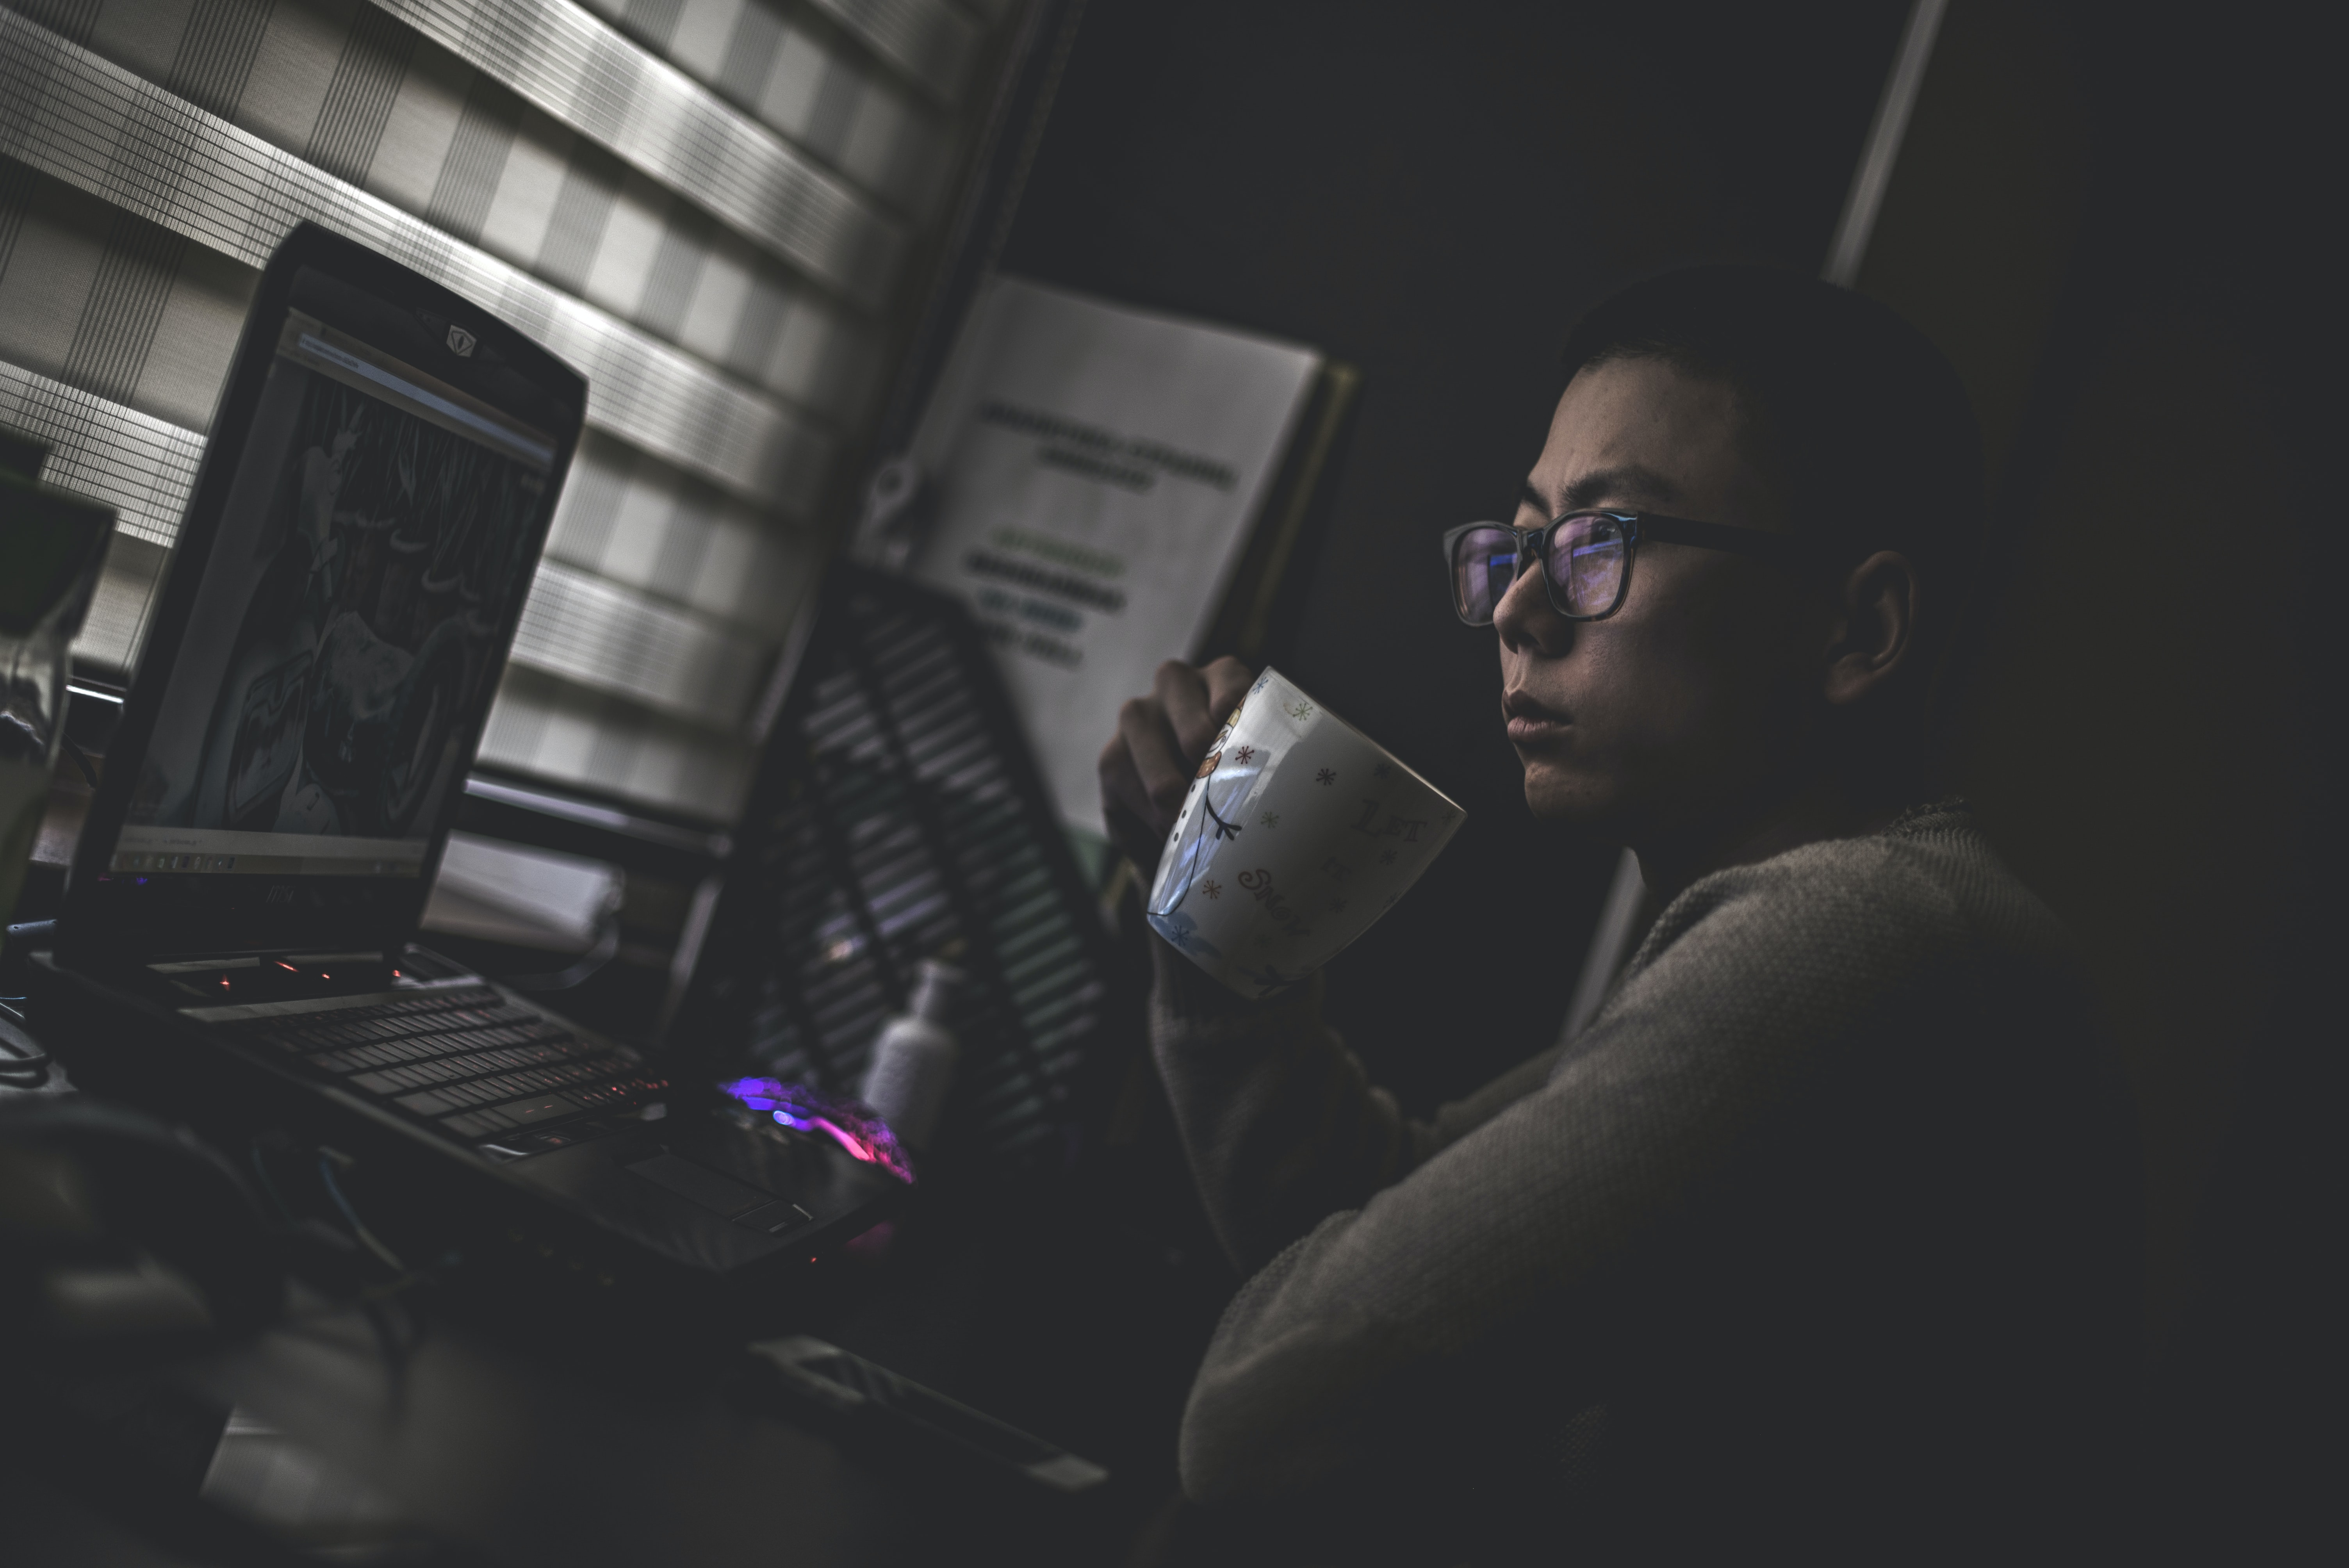 man holding mug in front laptop computer